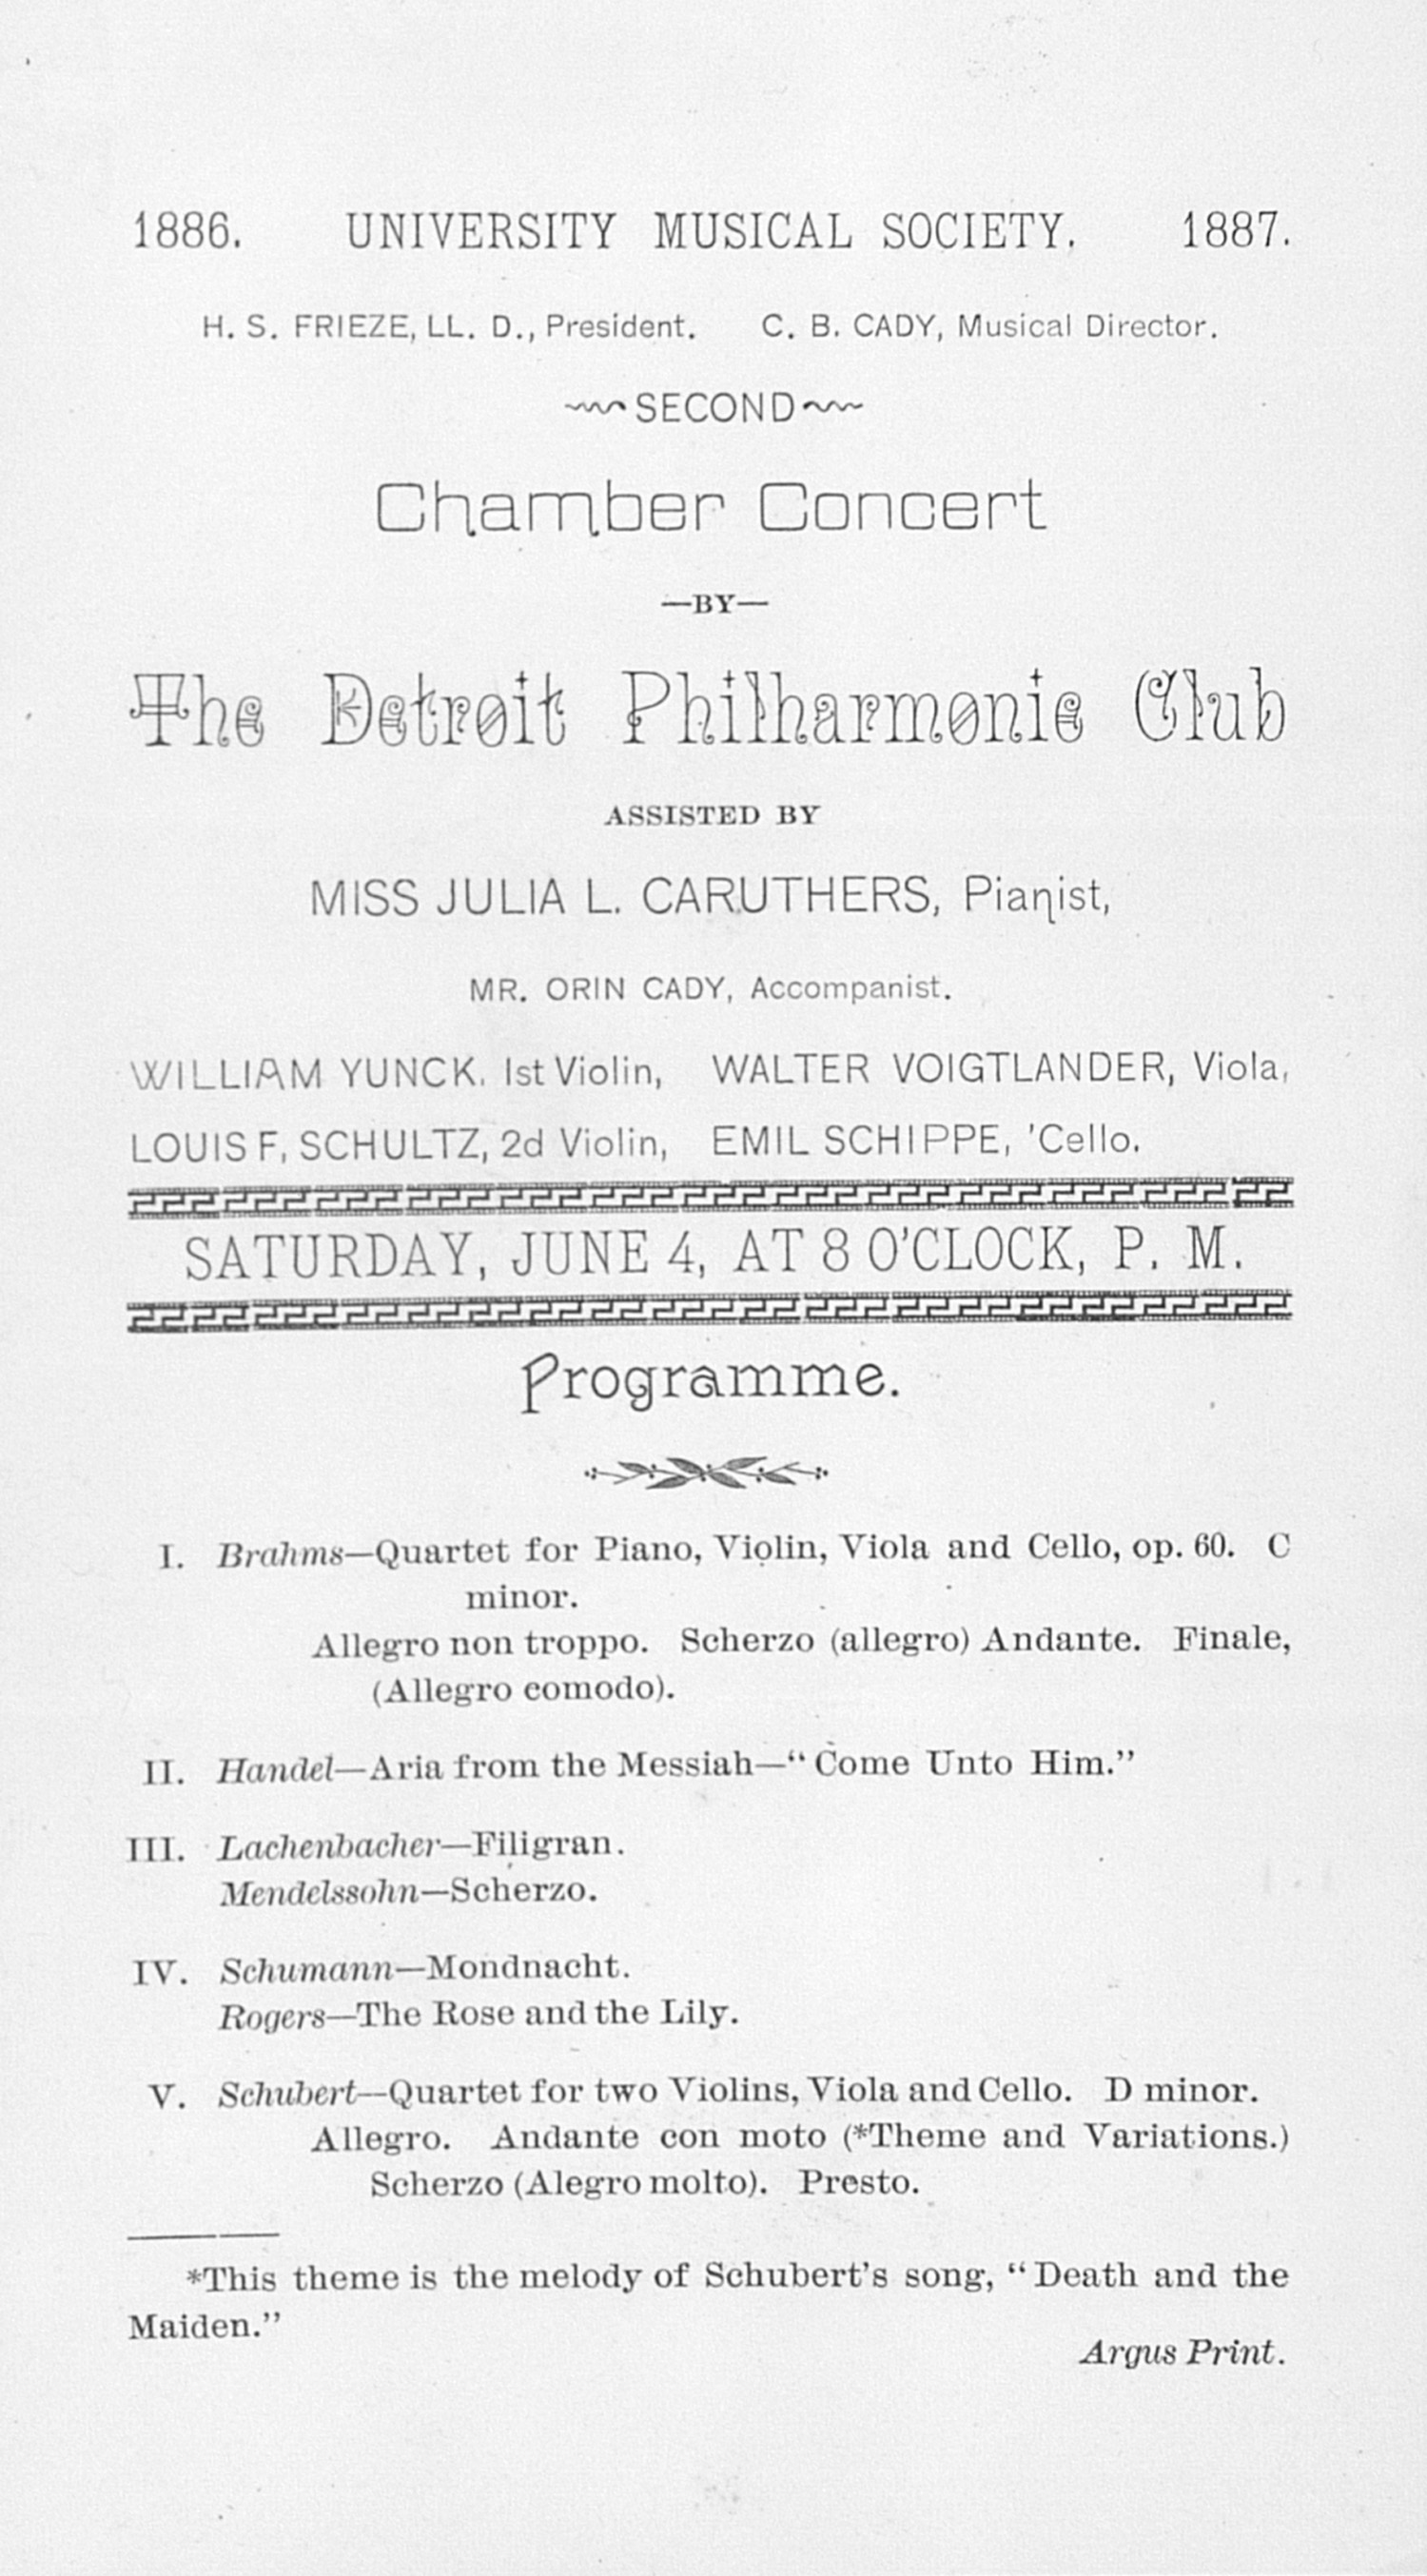 UMS Concert Program, June 4: Second Chamber Concert -- The Detroit Philharmonic Club image